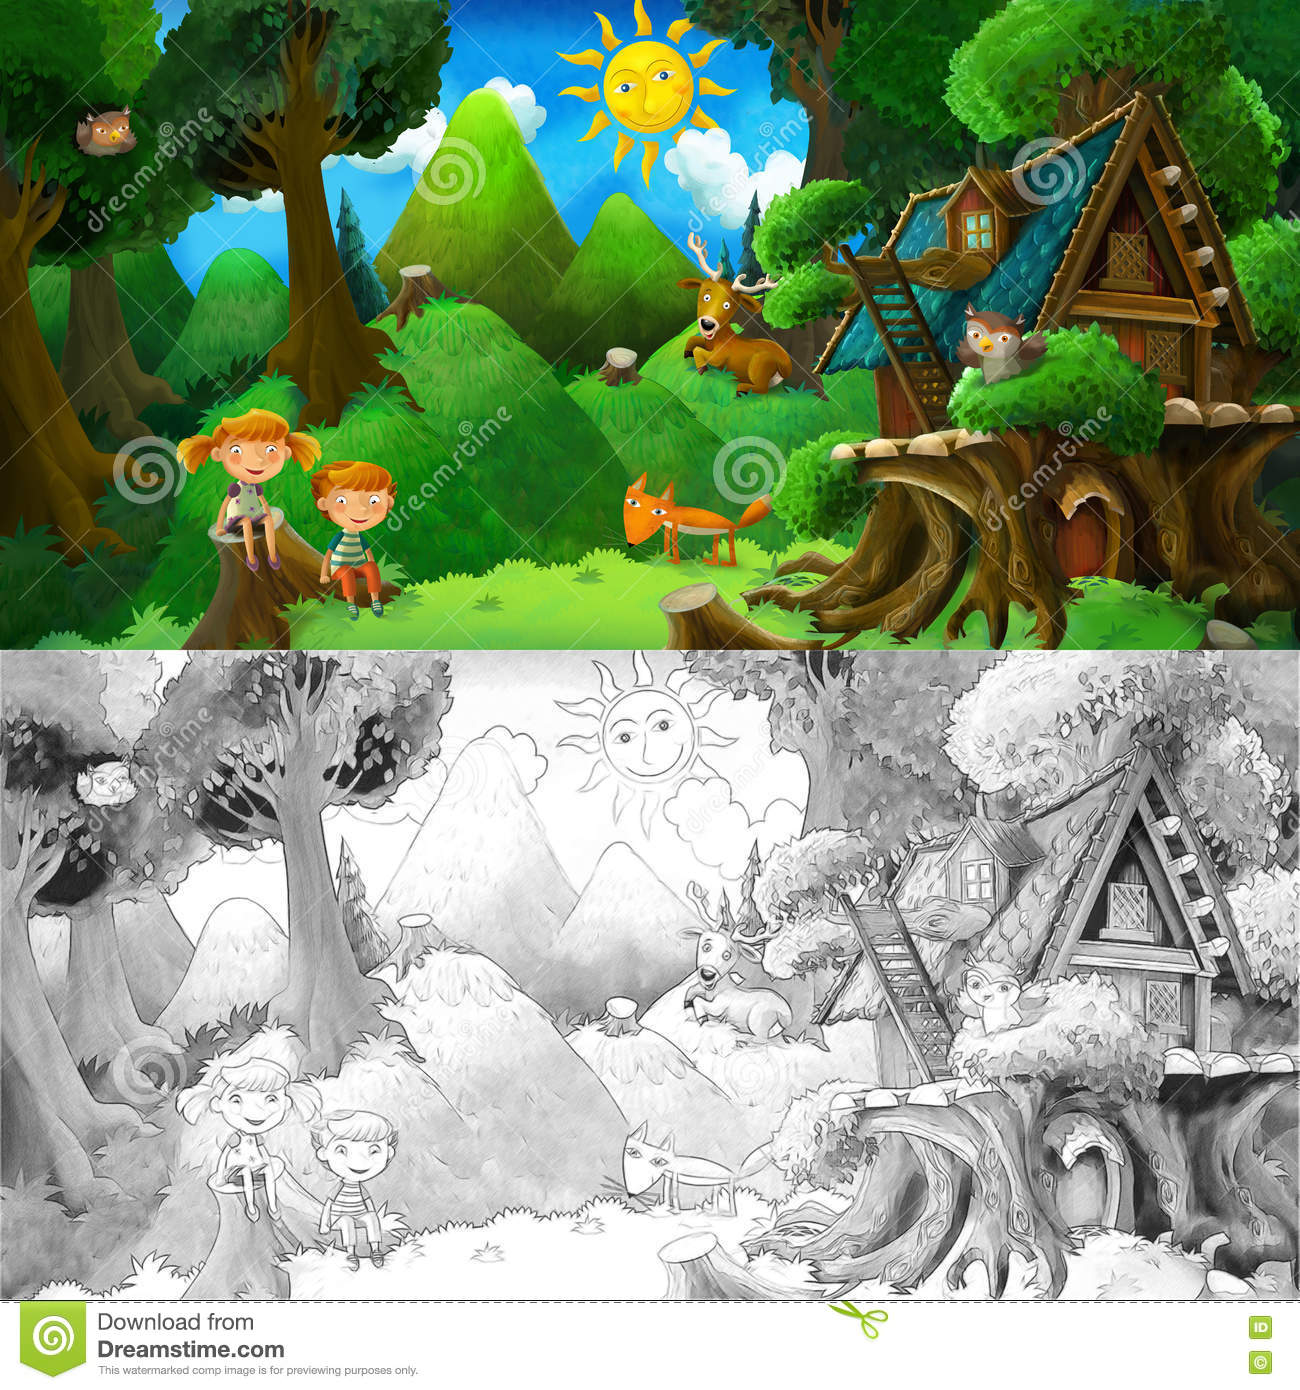 Cartoon Colorful Scene With Animal Friends Resting Under The Tree ...